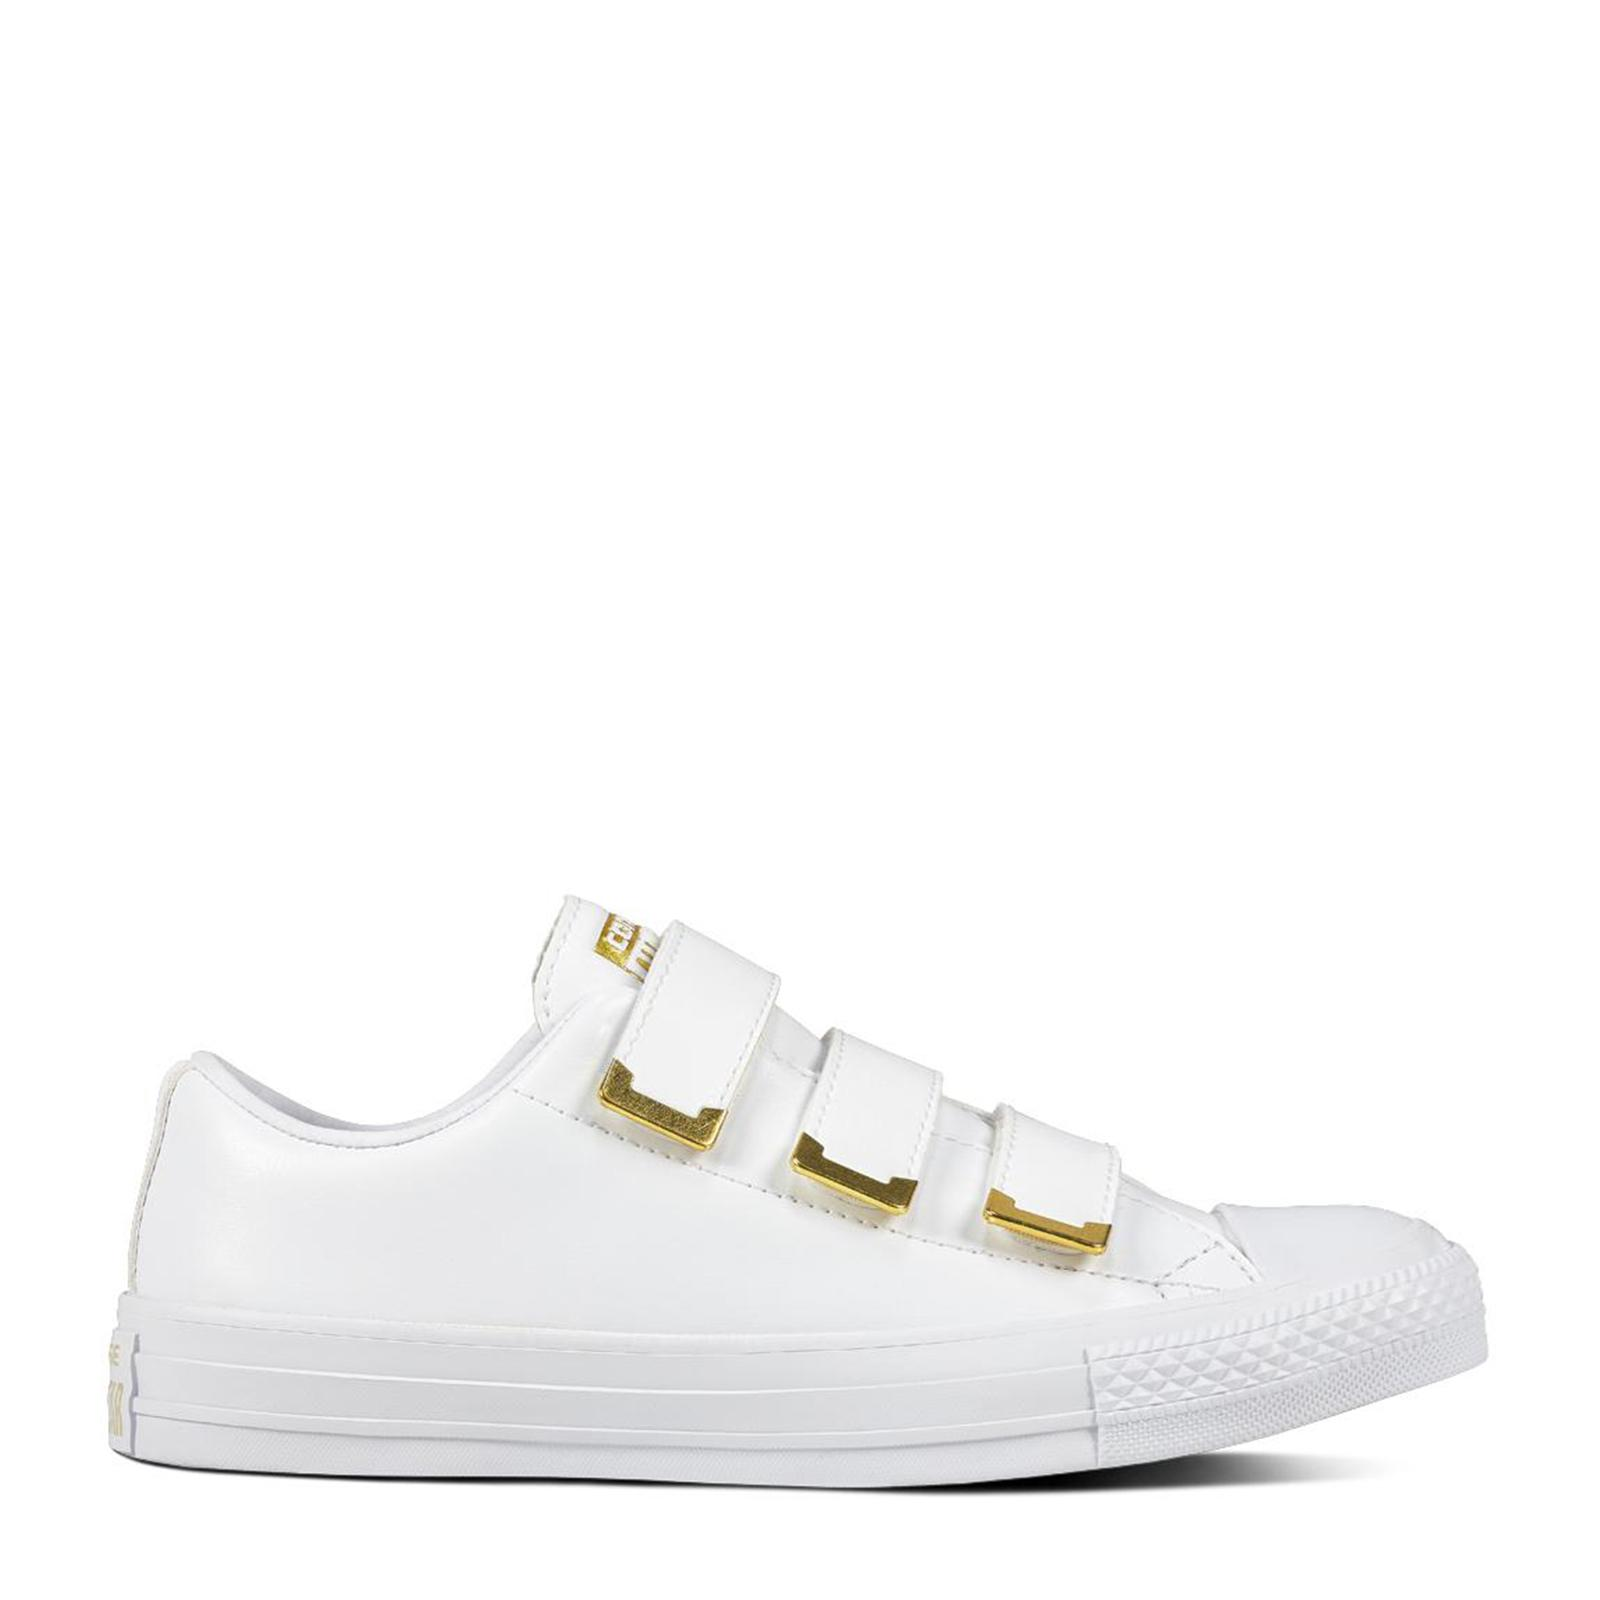 5d29b9beff2145  SALE  CONVERSE CHUCK TAYLOR ALL STAR 3V - OX - WHITE WHITE